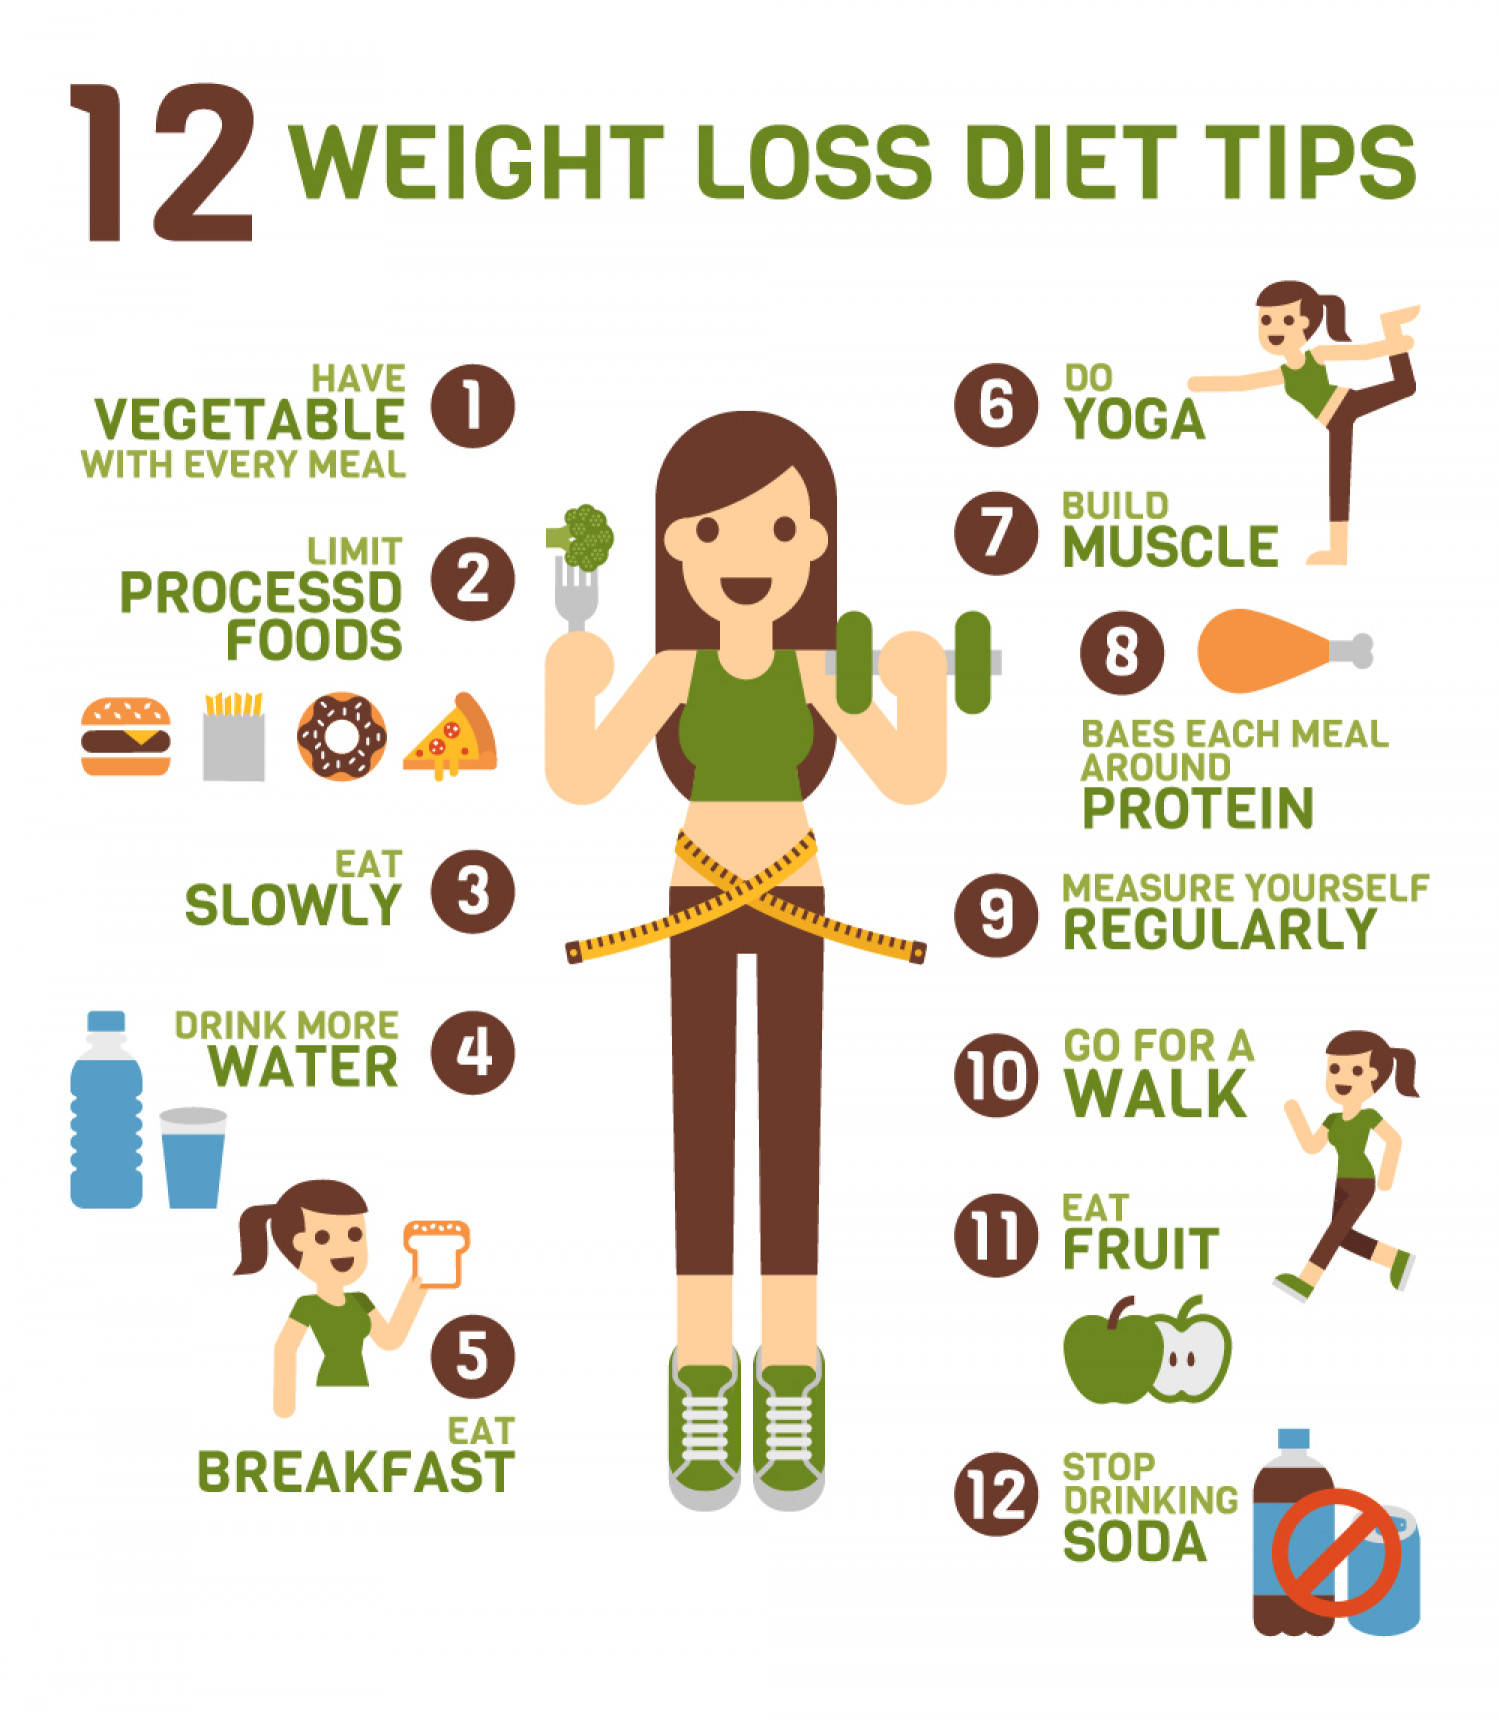 Weight loss tips | Visual.ly